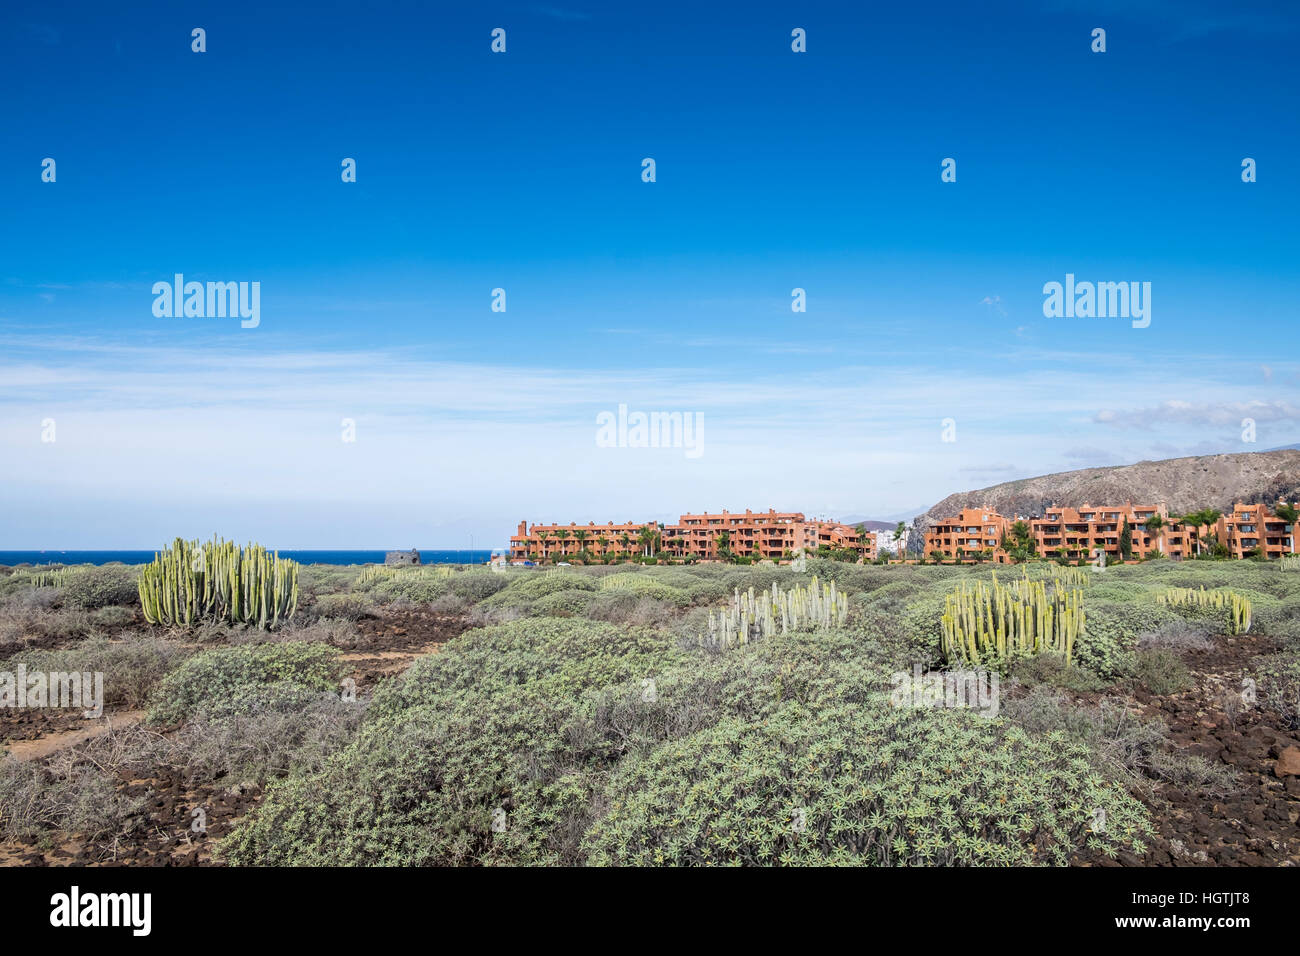 El Palm Mar urbanisation at the base of Guaza mountain next to the coast in Tenerife, Canary Islands, Spain - Stock Image